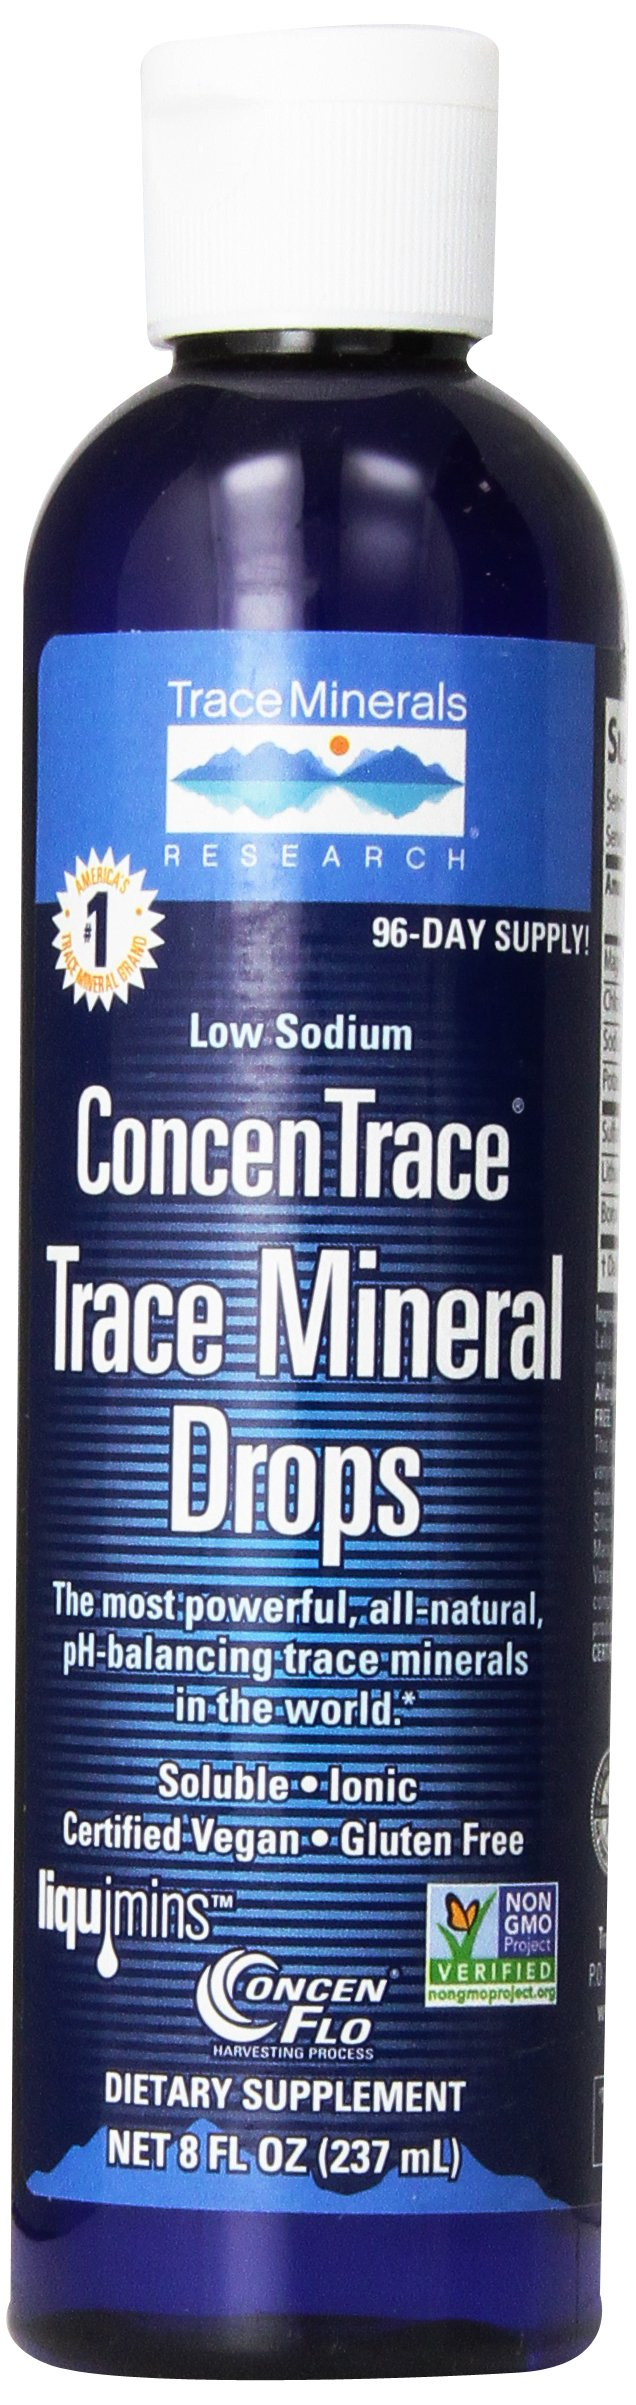 Trace Minerals Research - Concentrace Trace Mineral Drops, 8 fl oz liquid by Trace Minerals Research (Image #1)